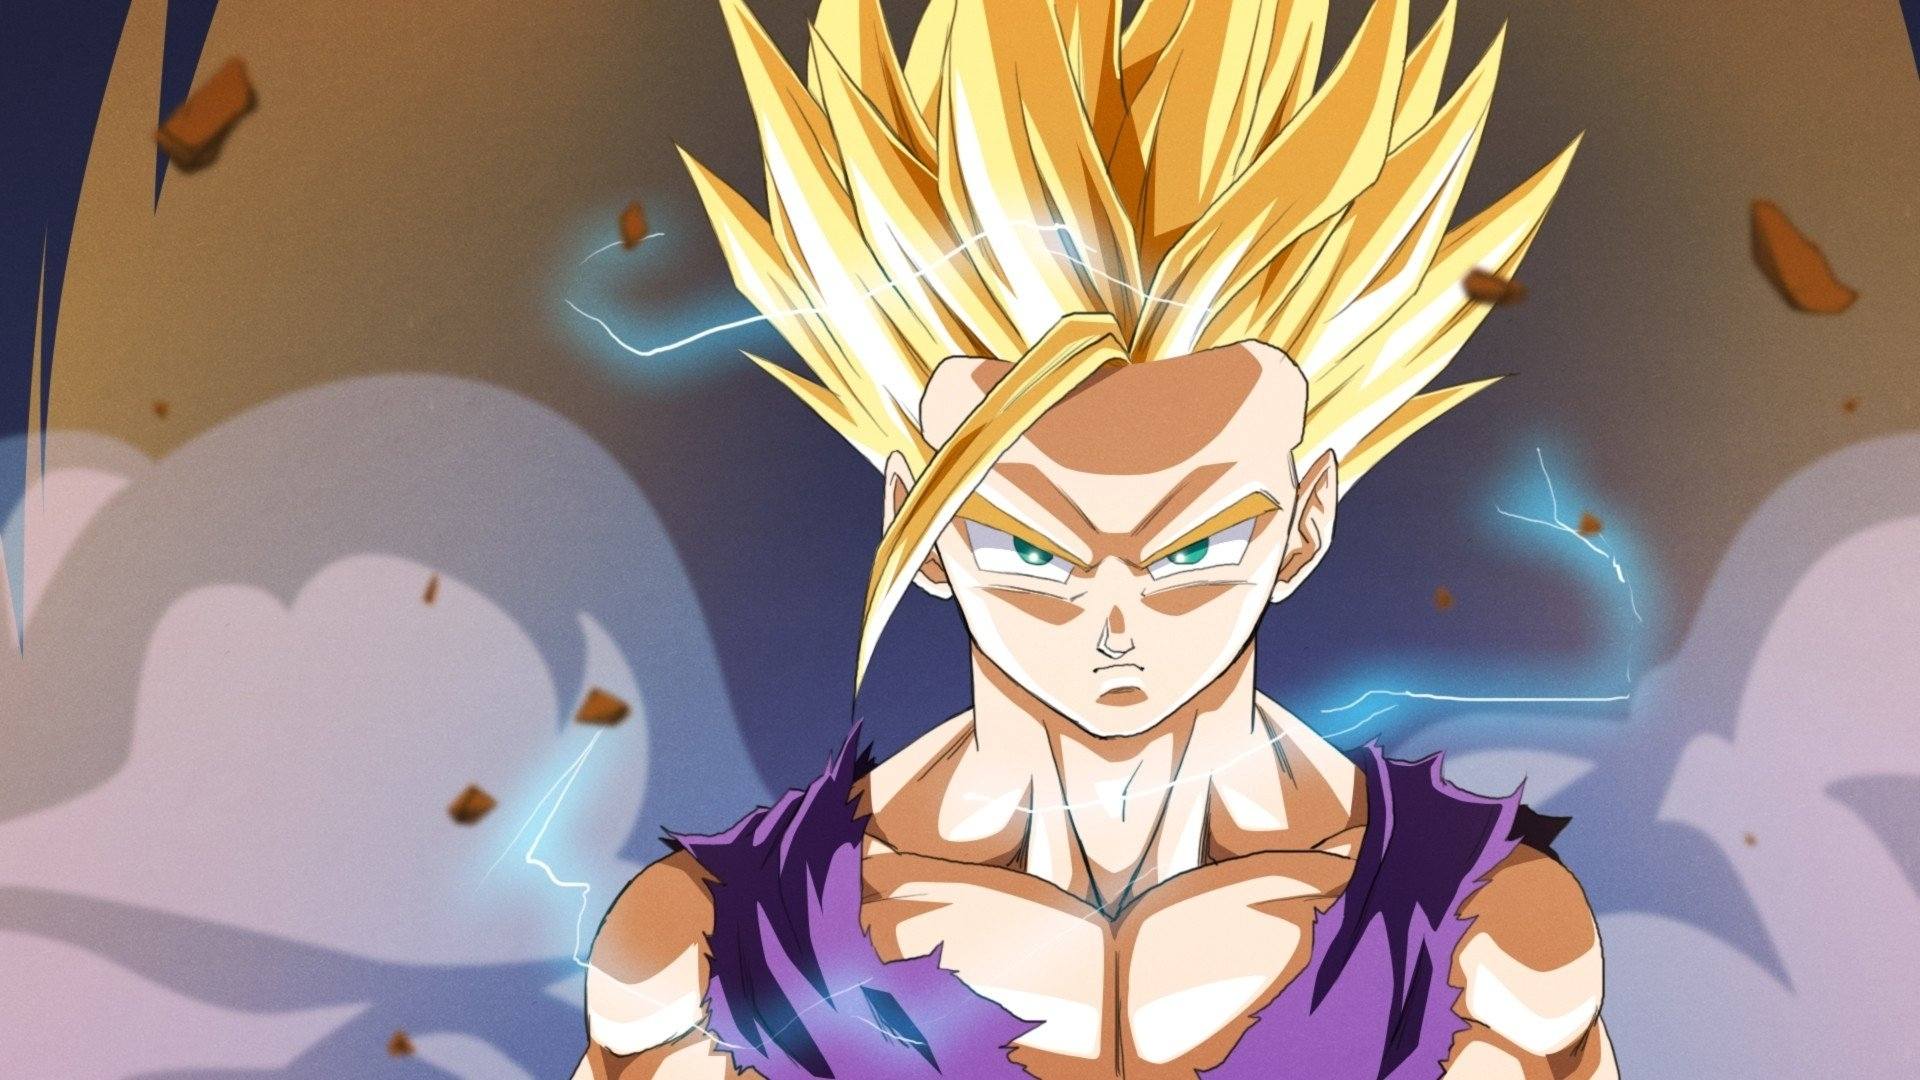 635 dragon ball z hd wallpapers | background images - wallpaper abyss